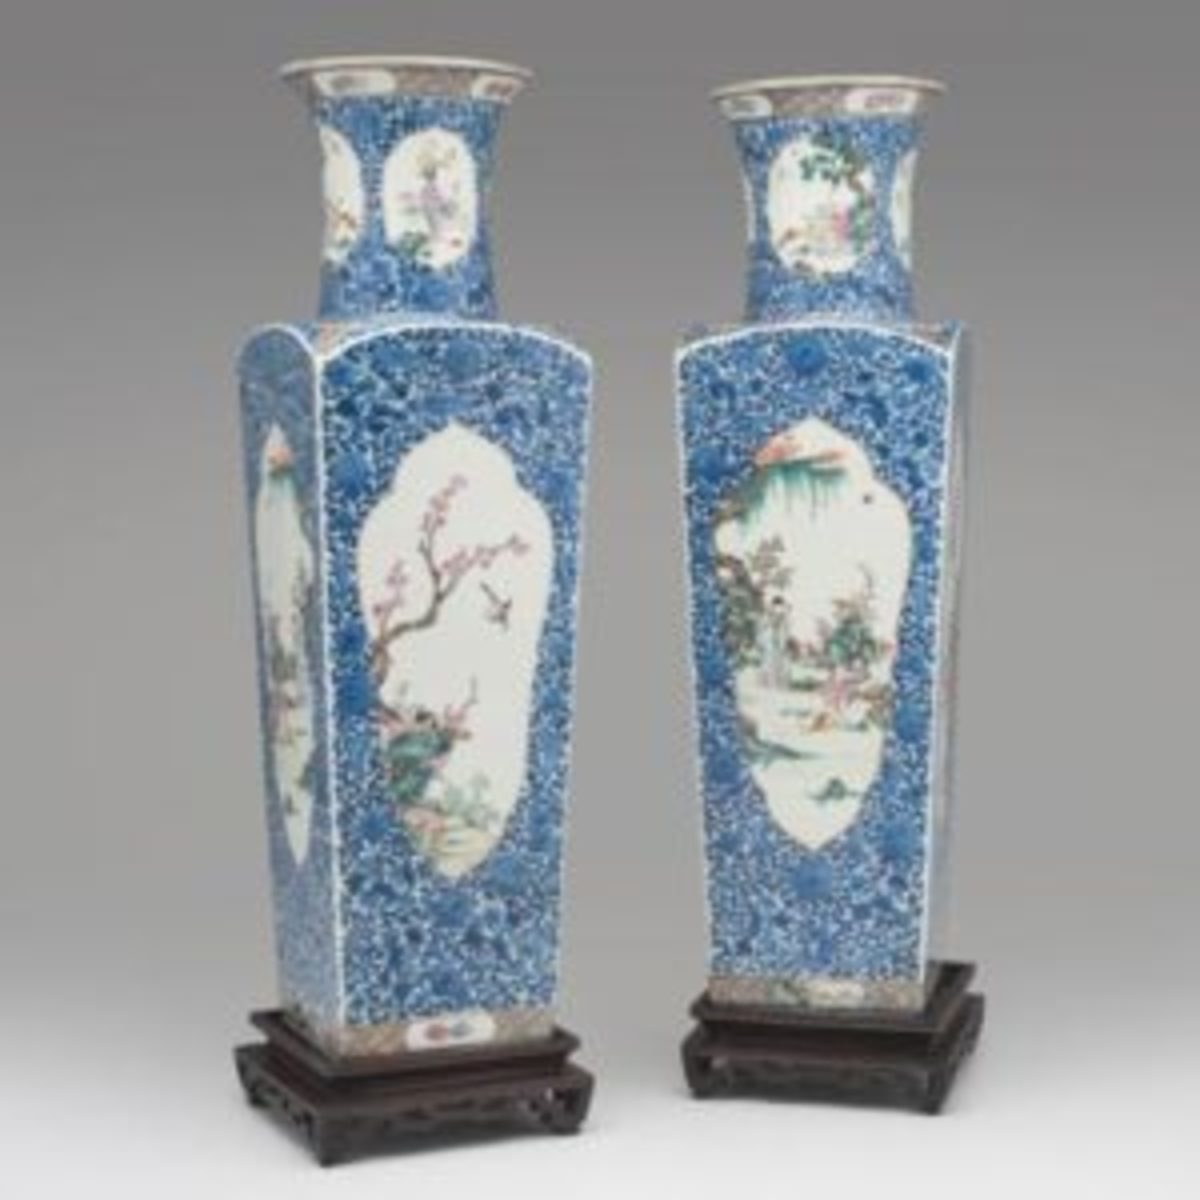 Chinese square vases